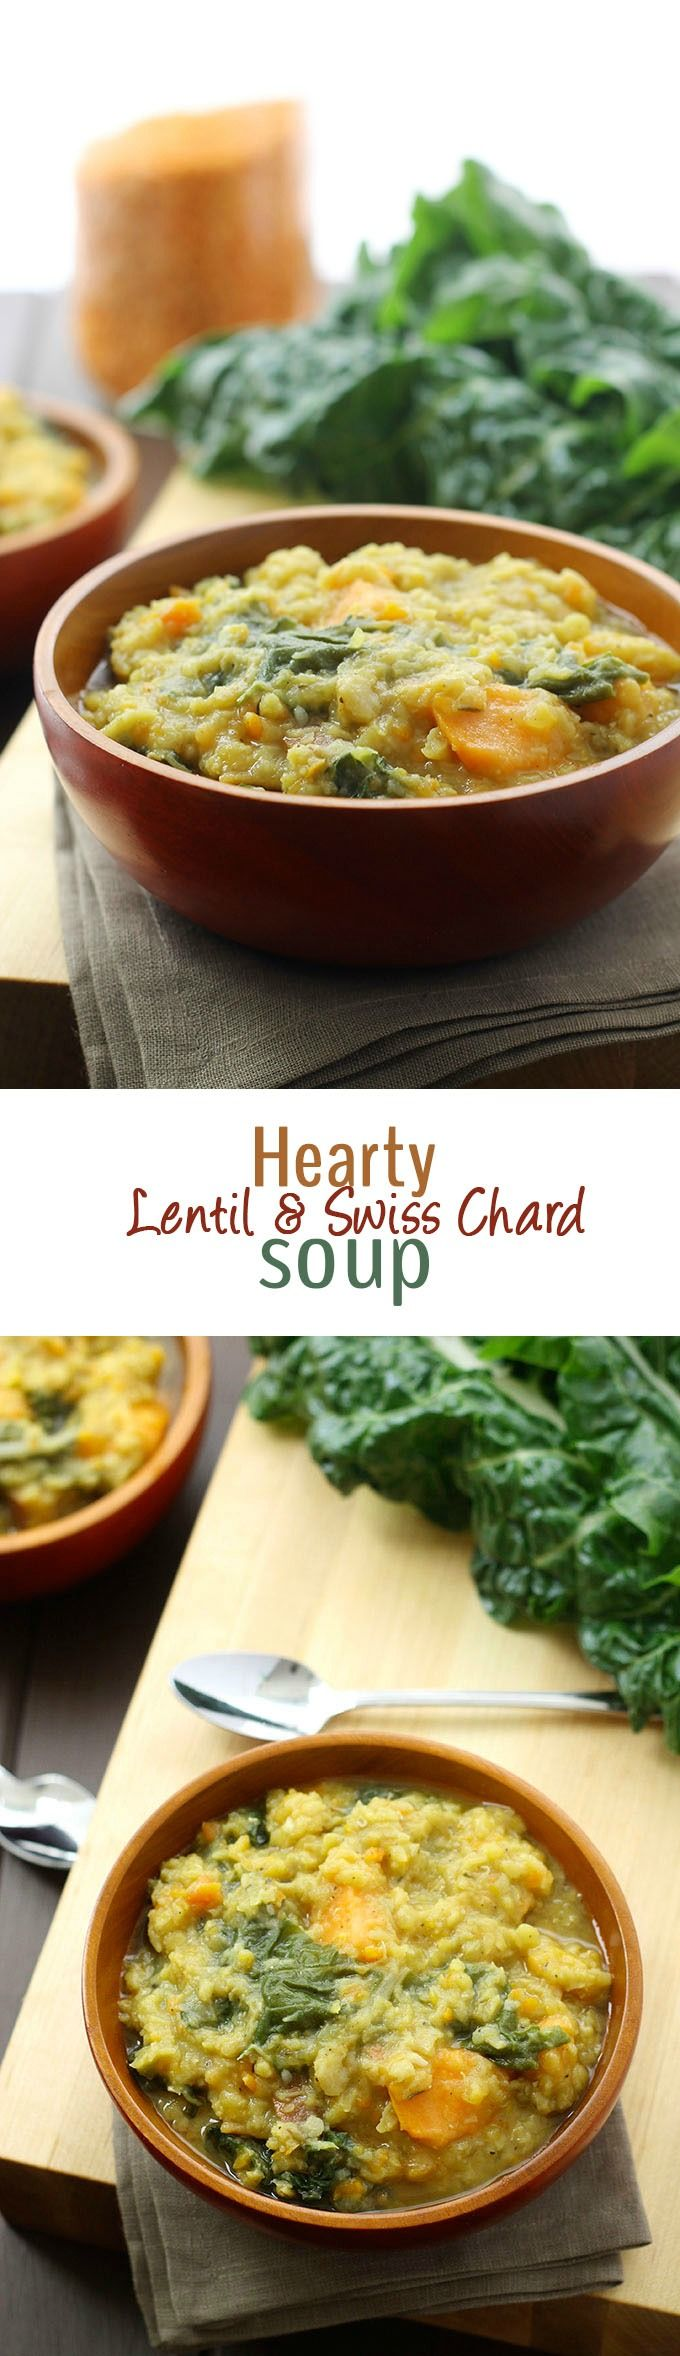 Hearty Lentil and Swiss Chard Soup - a veggie and protein-packed soup that's perfect for Fall! #healthy #recipe